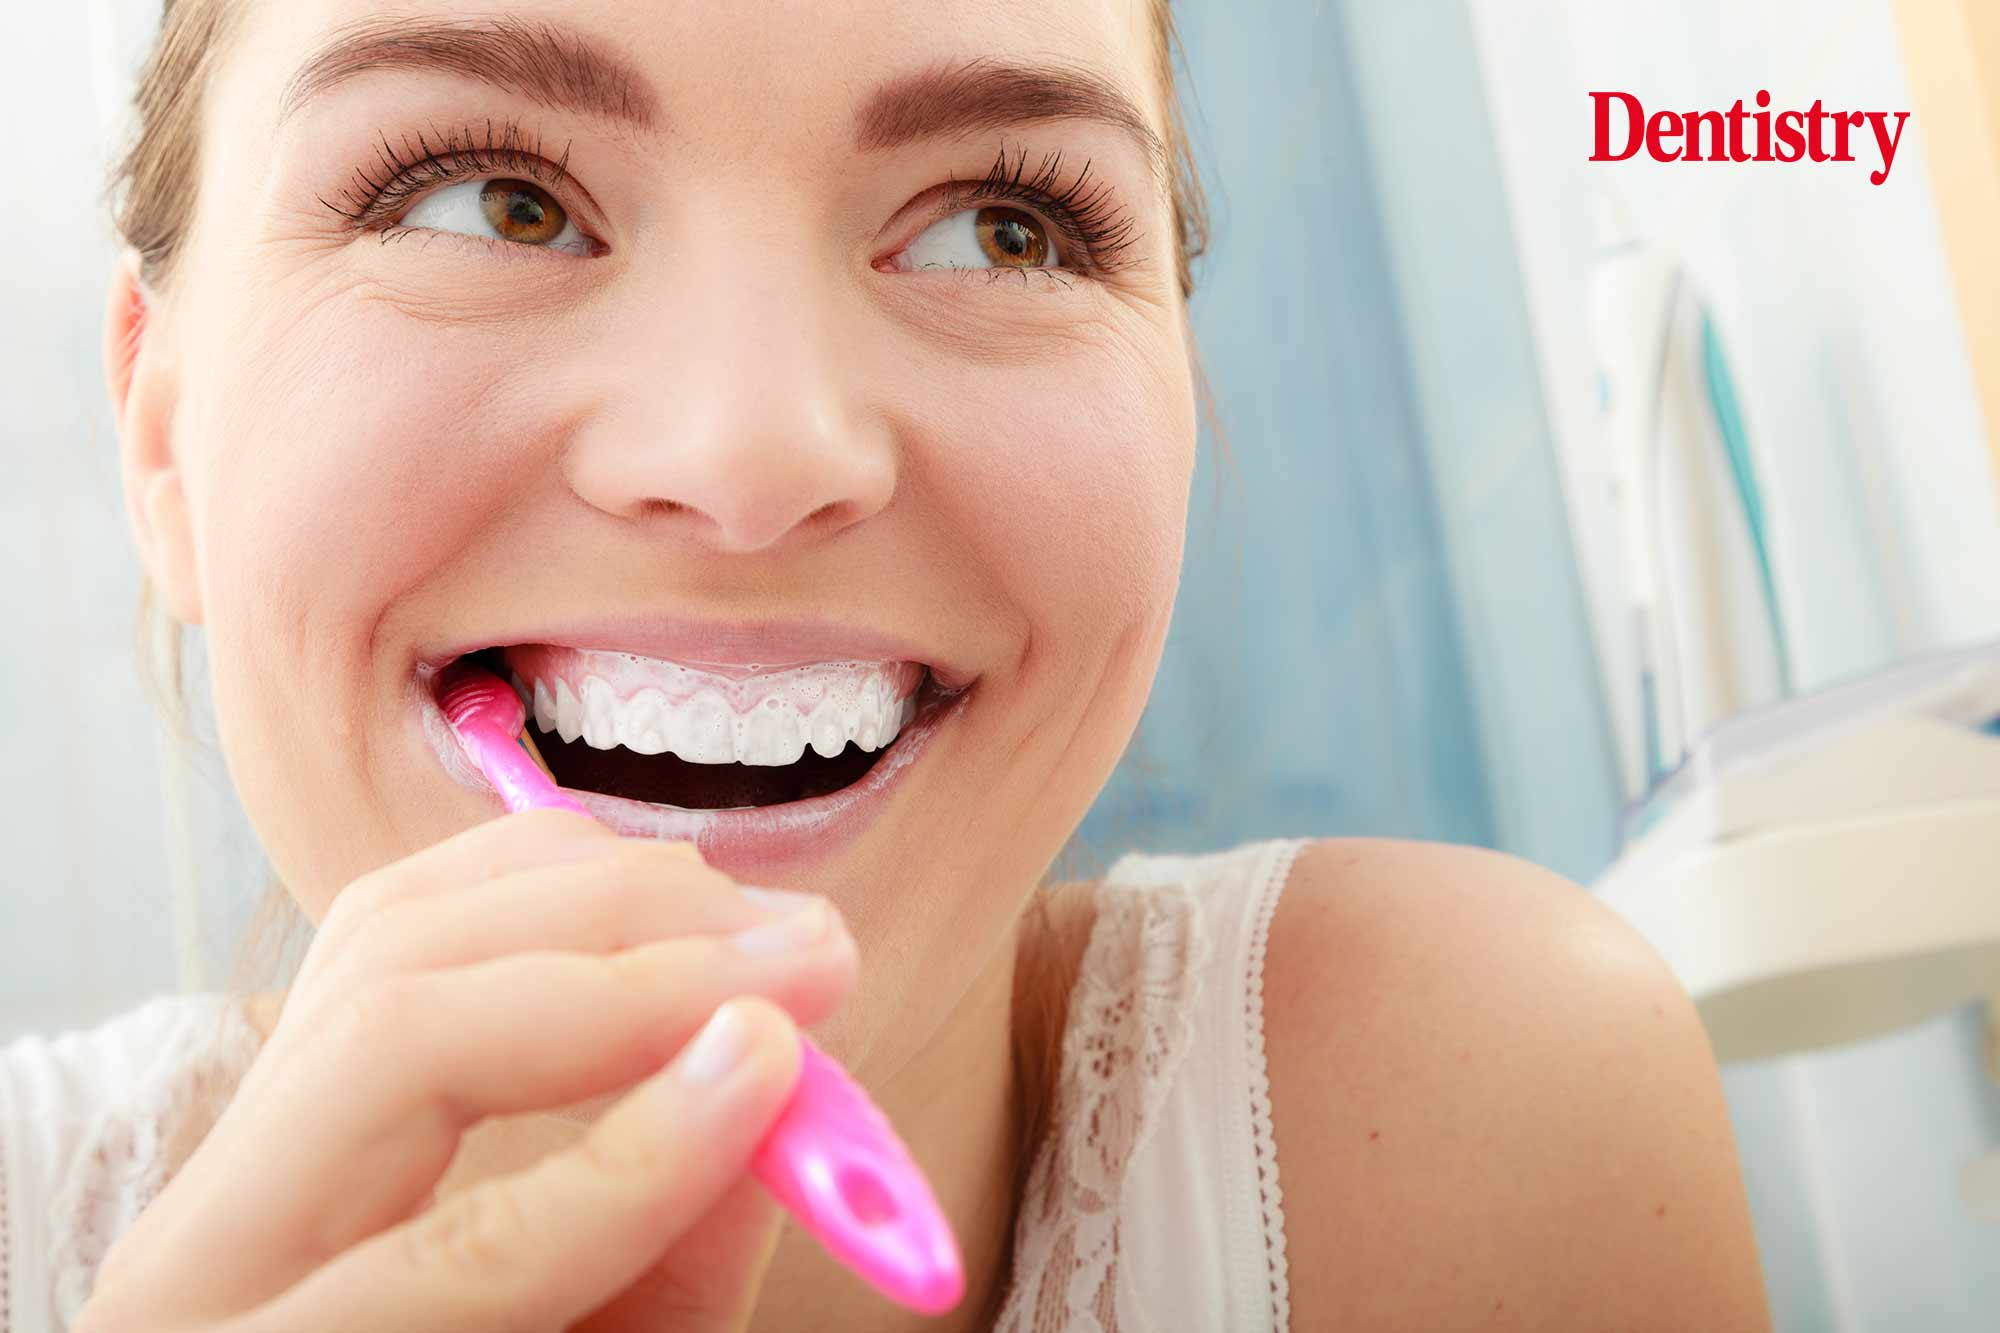 Nearly 9 in 10 people believe good oral care benefits overall health